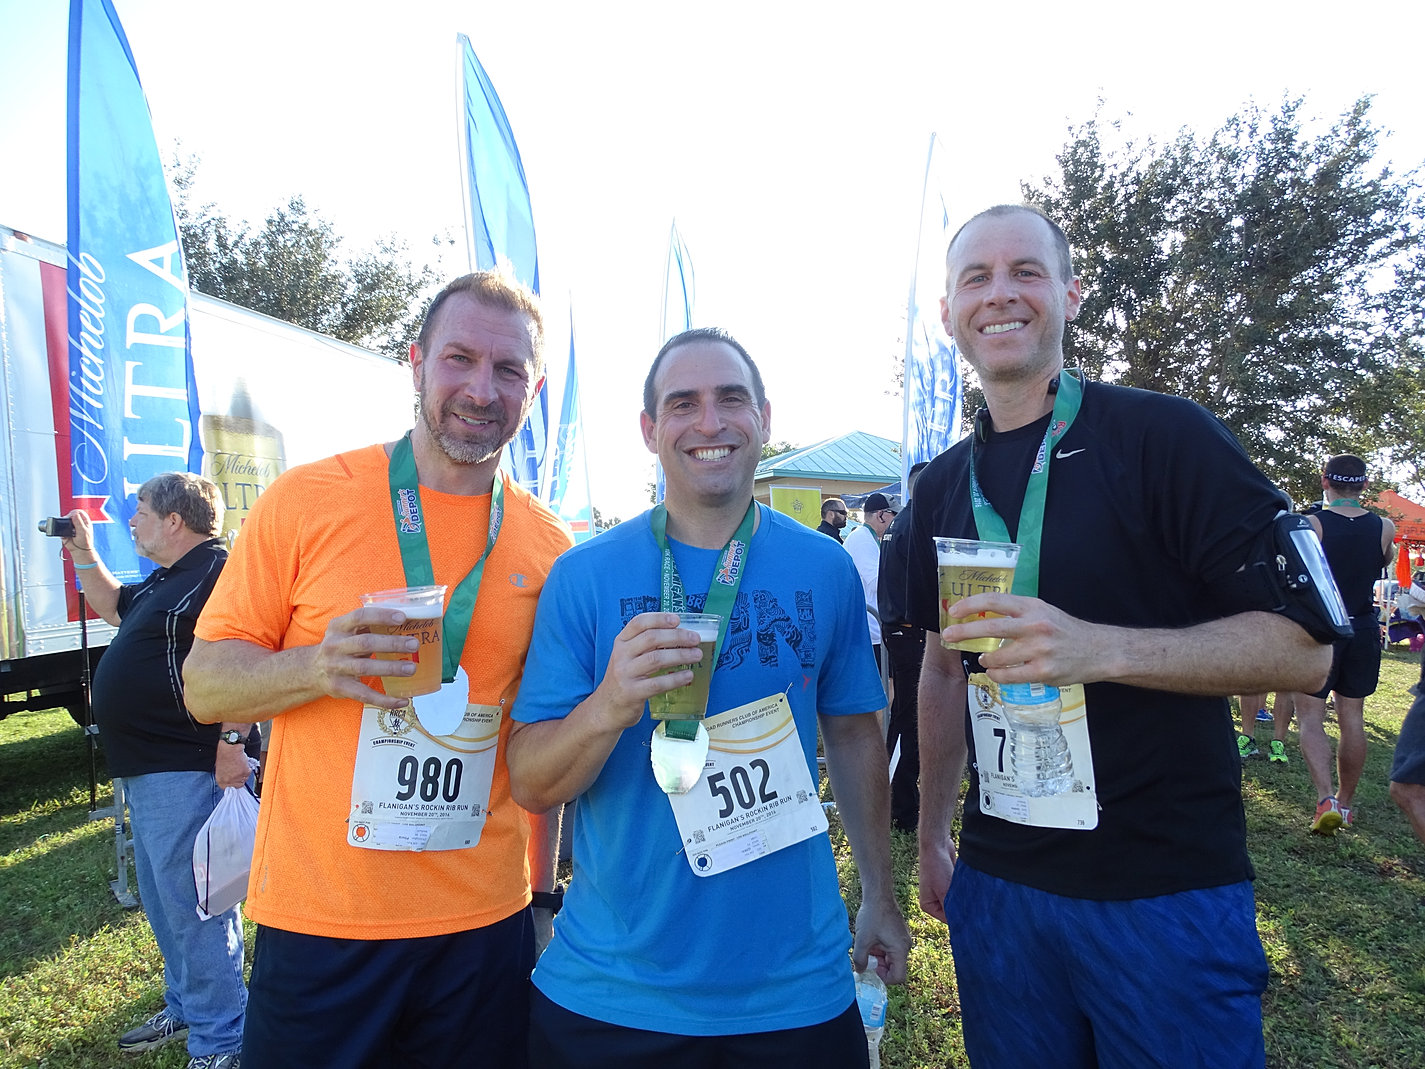 Miami Runs | Davie | Flanigan's Rockin' Rib Run 10K